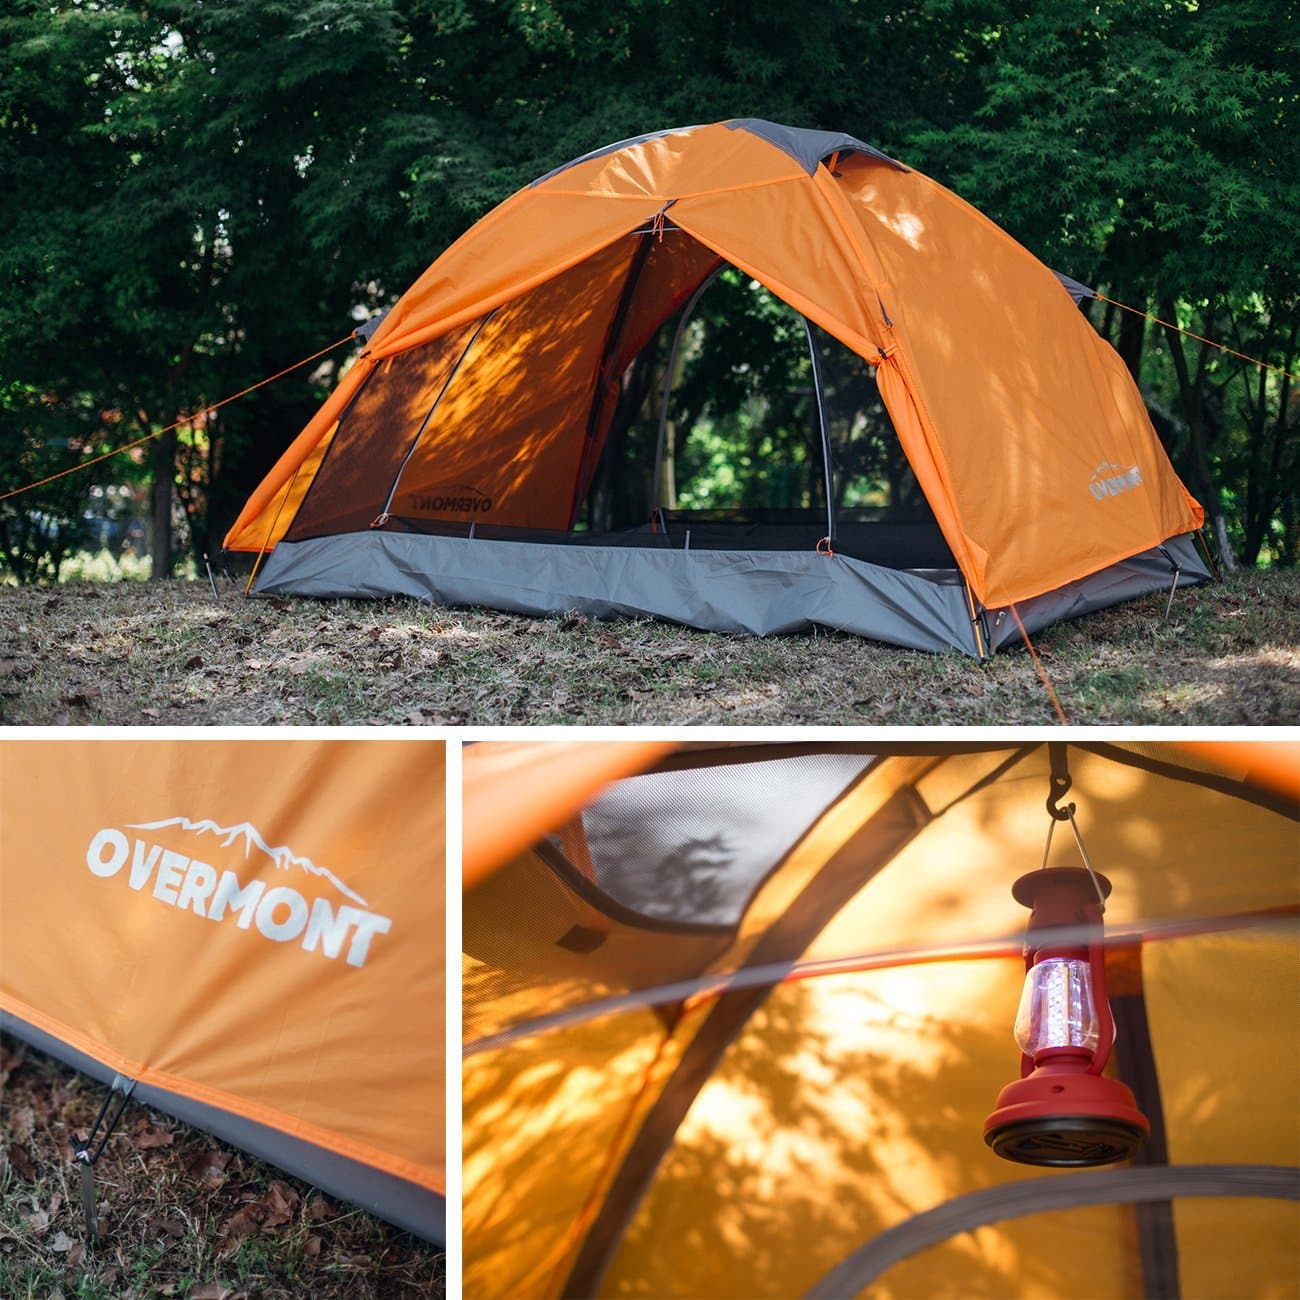 Best 2 Man Tent Reviews UK 2020 Top Models Compared